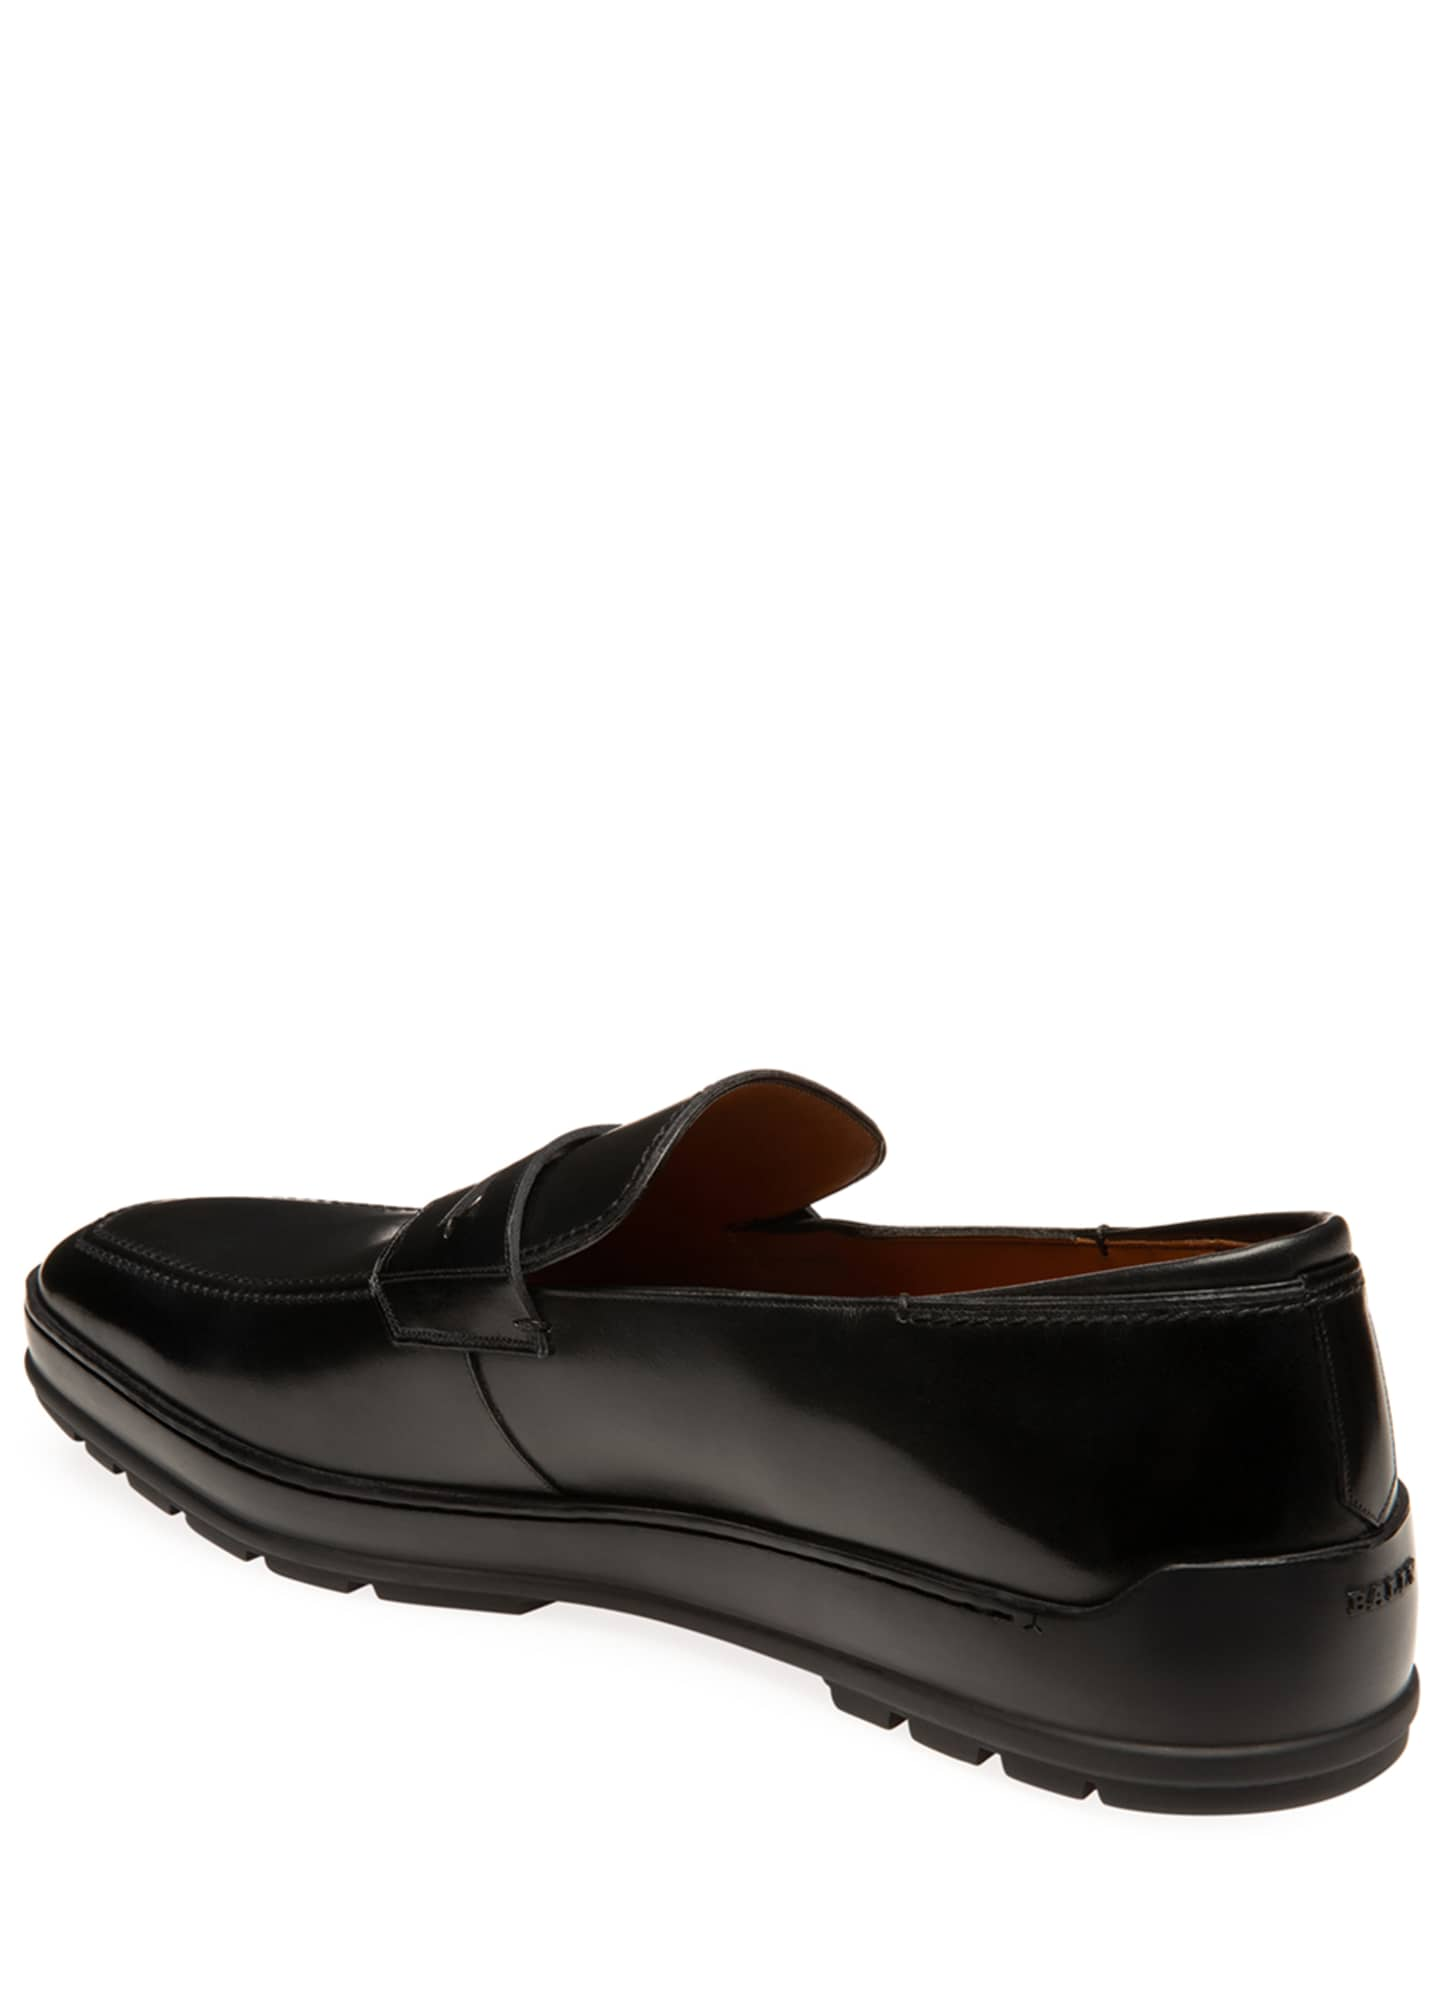 Image 4 of 4: Men's Relon Leather Penny Loafers